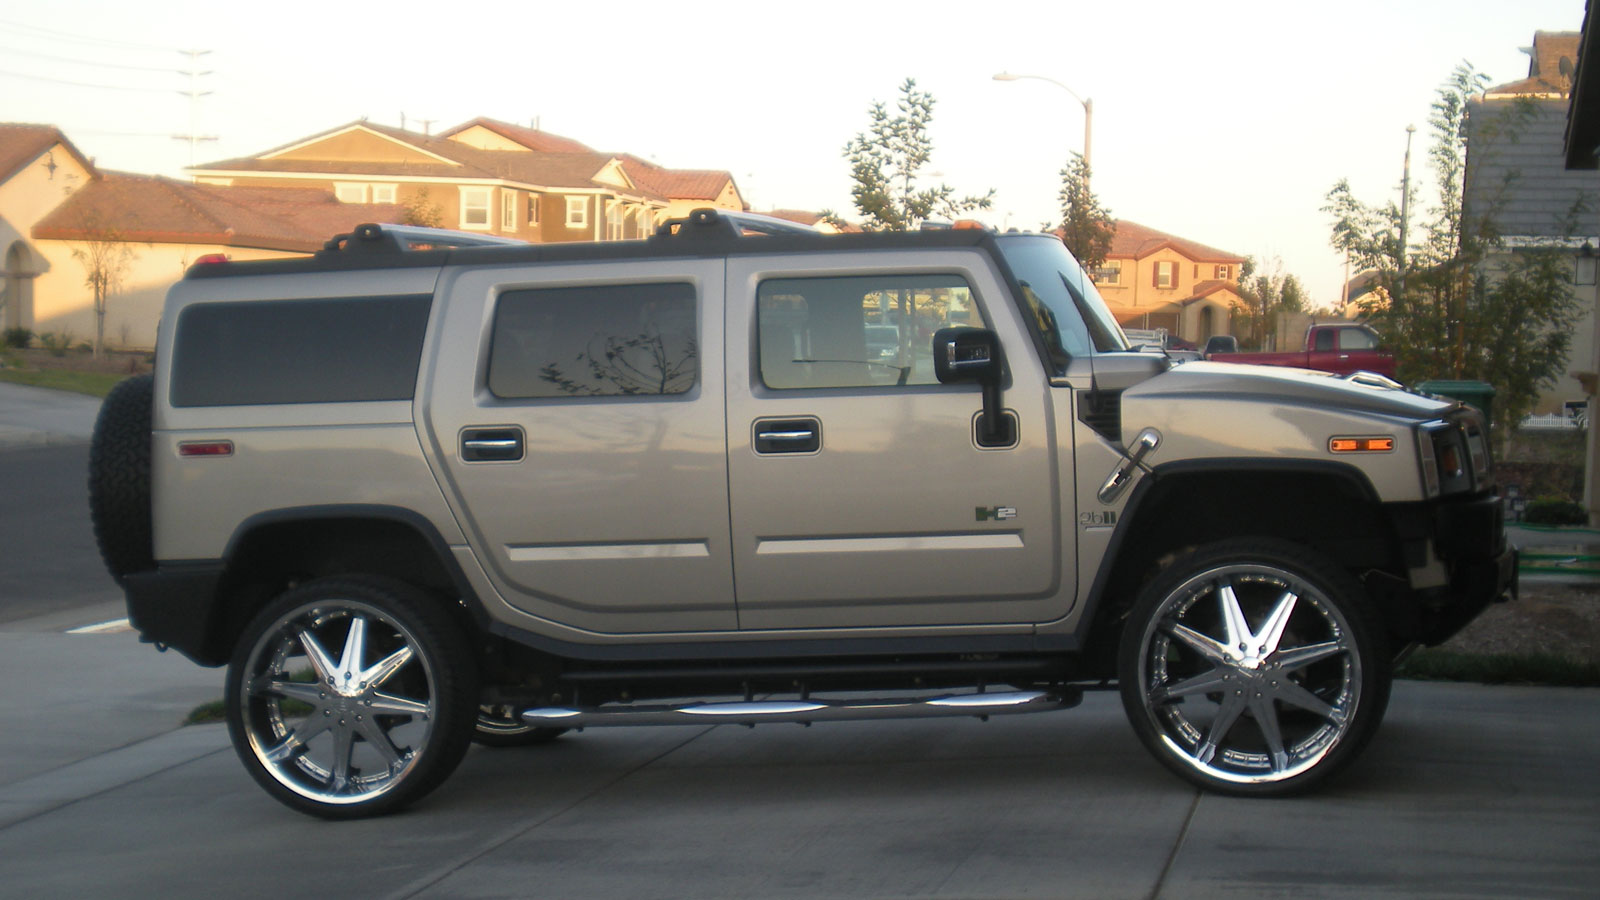 Hummer H2 188px Image 2 HD Wallpapers Download free images and photos [musssic.tk]